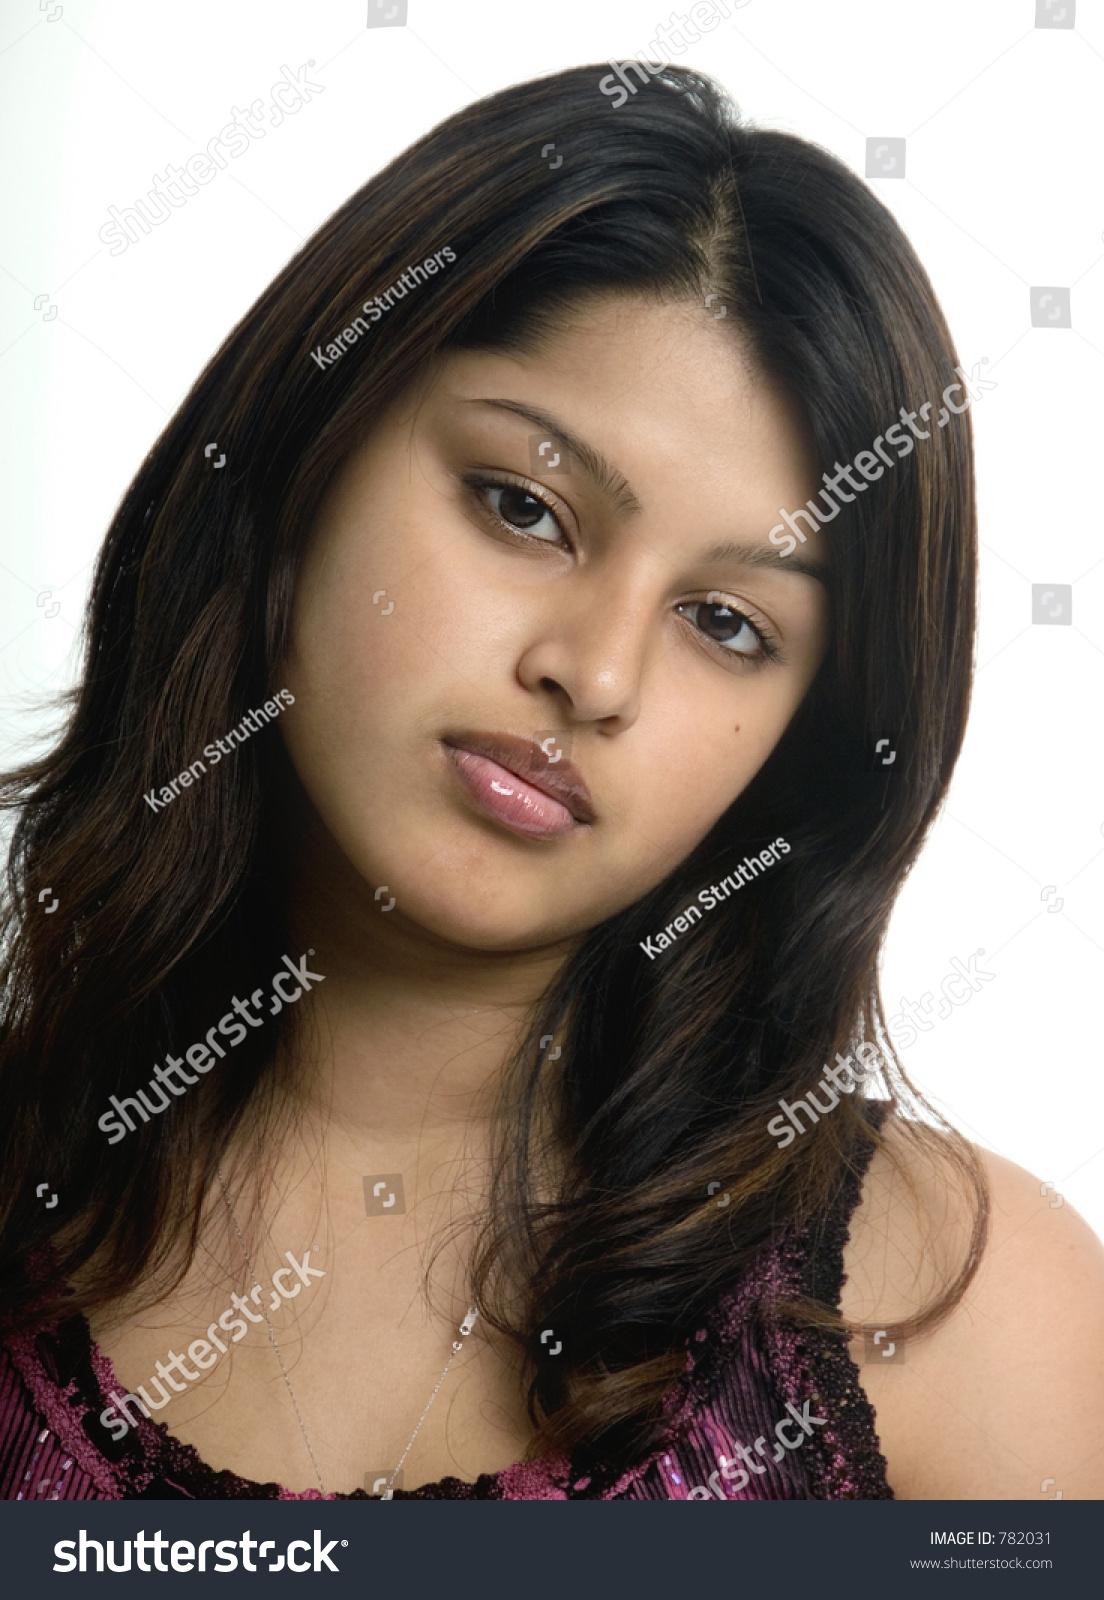 Tell more nudeimage of bengali female